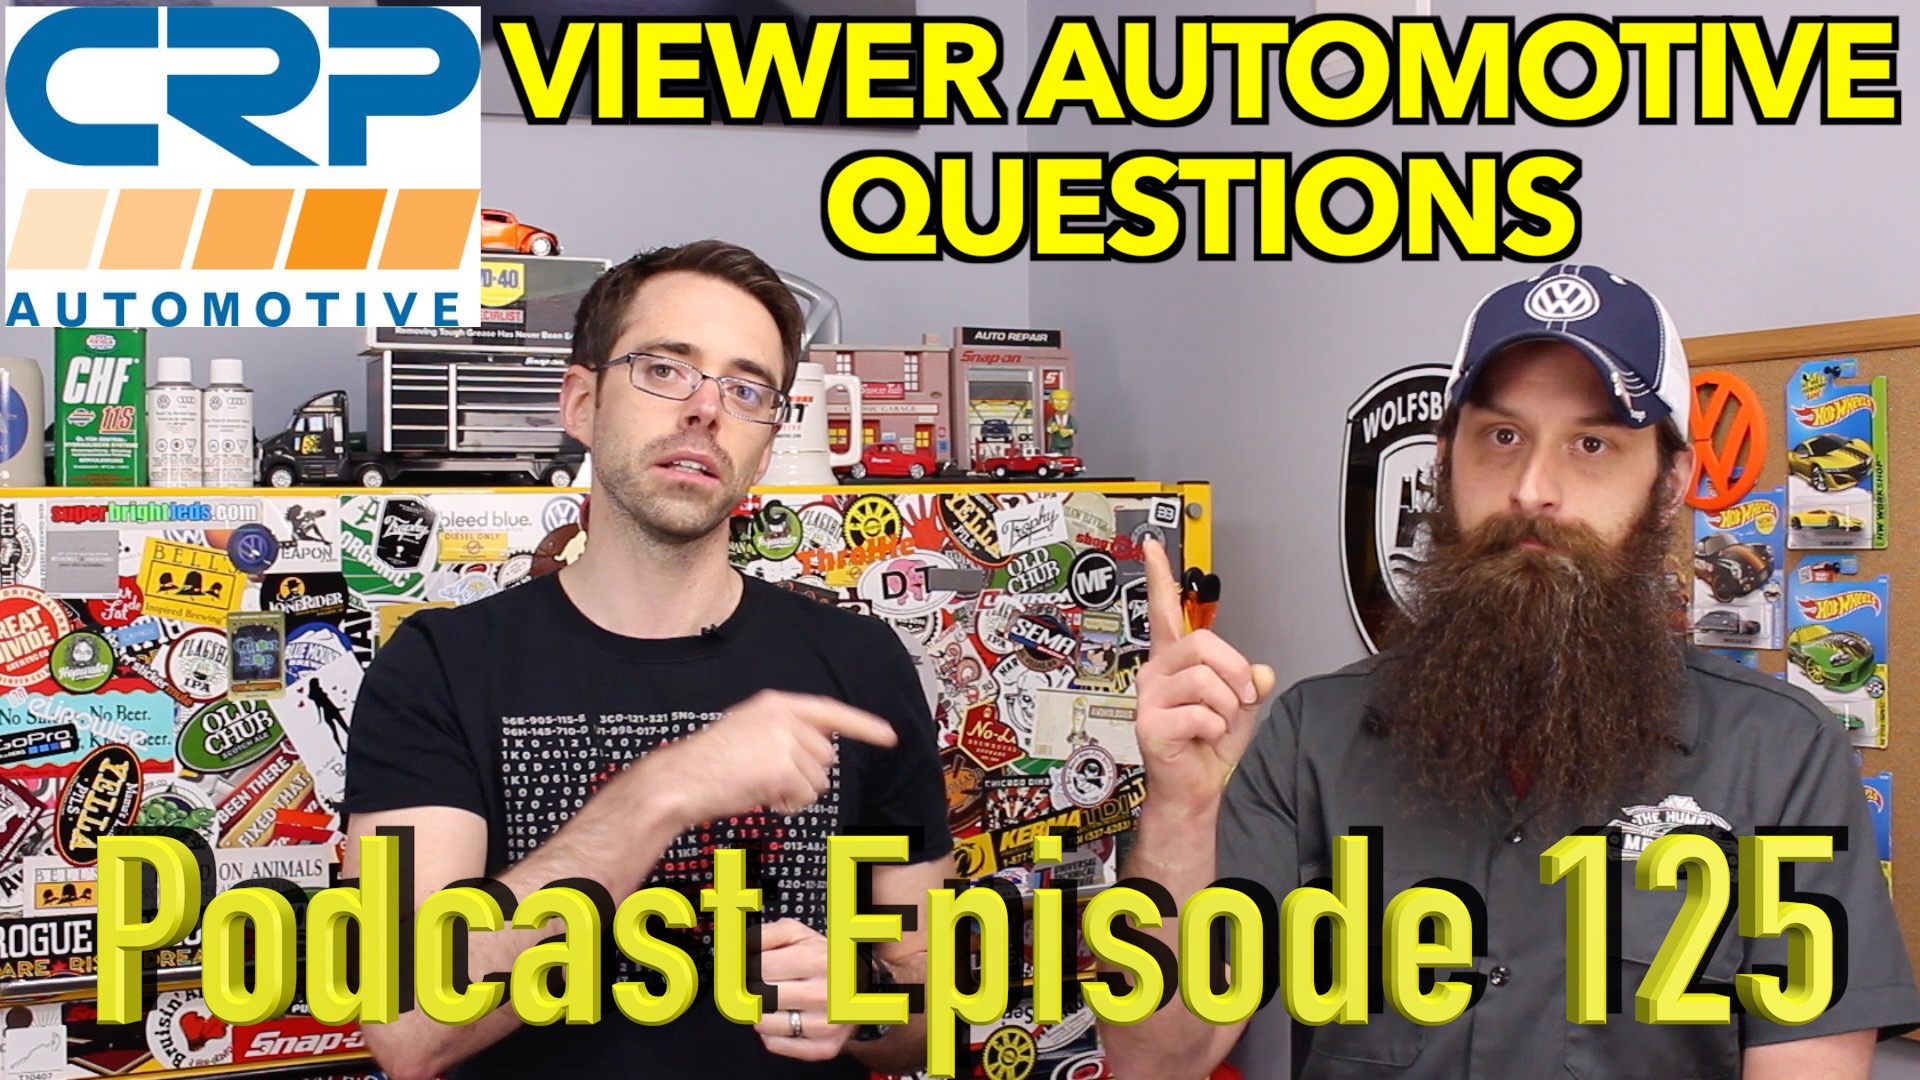 Viewer Automotive Questions ~ Podcast Episode 125